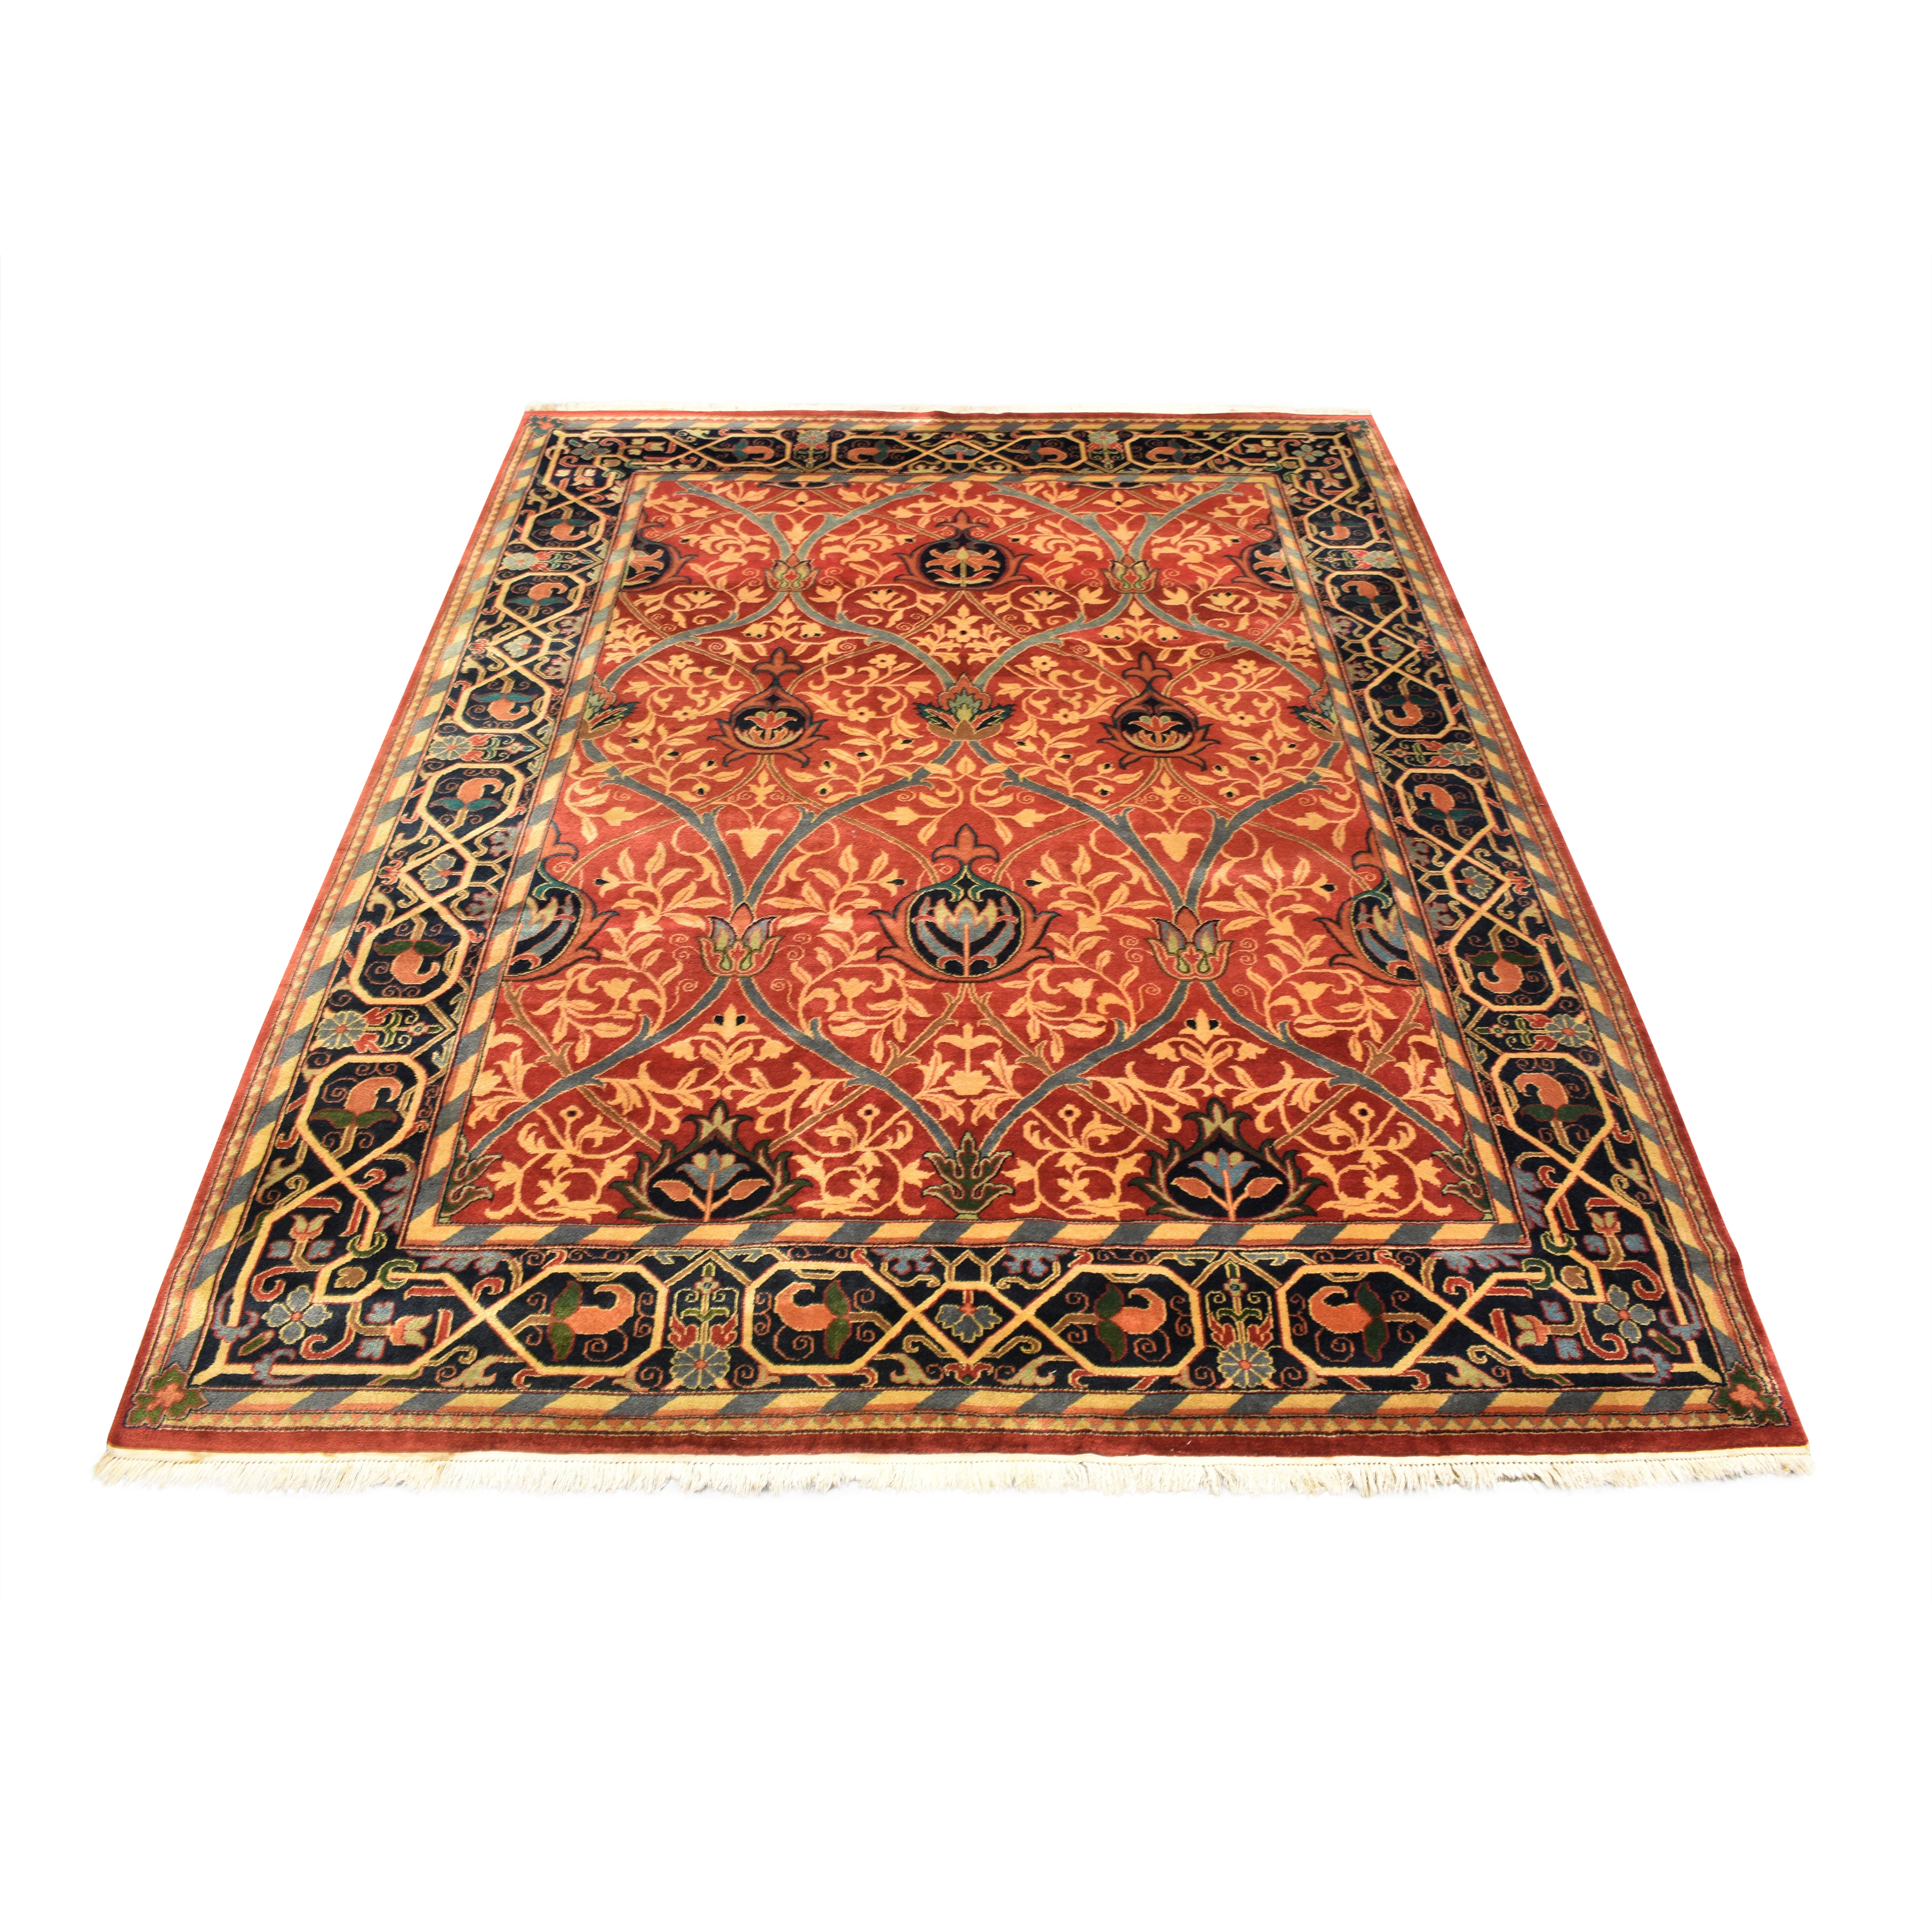 William Morris-Style Area Rug for sale